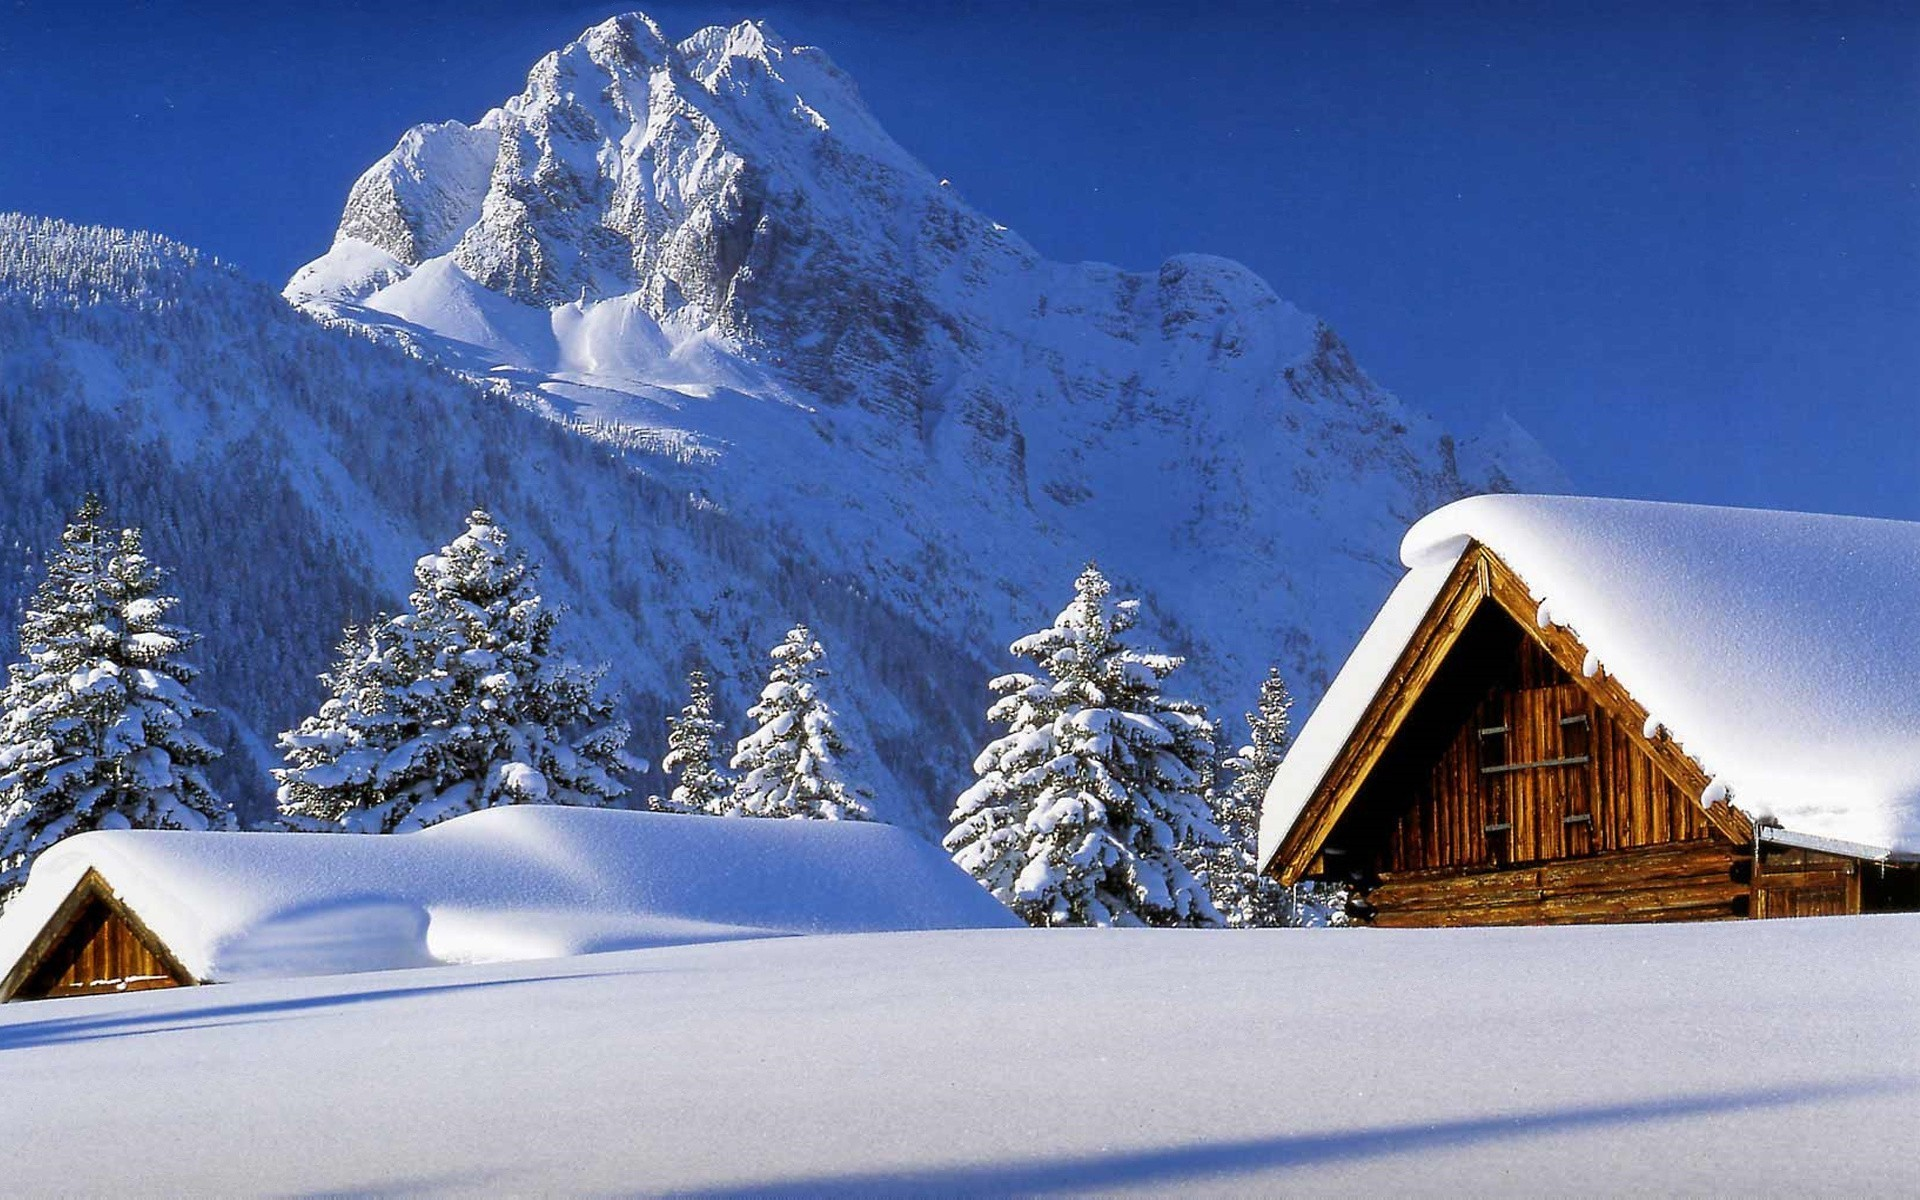 Hutte Landschaften Berge Schnee Winter Wallpaper Allwallpaper In